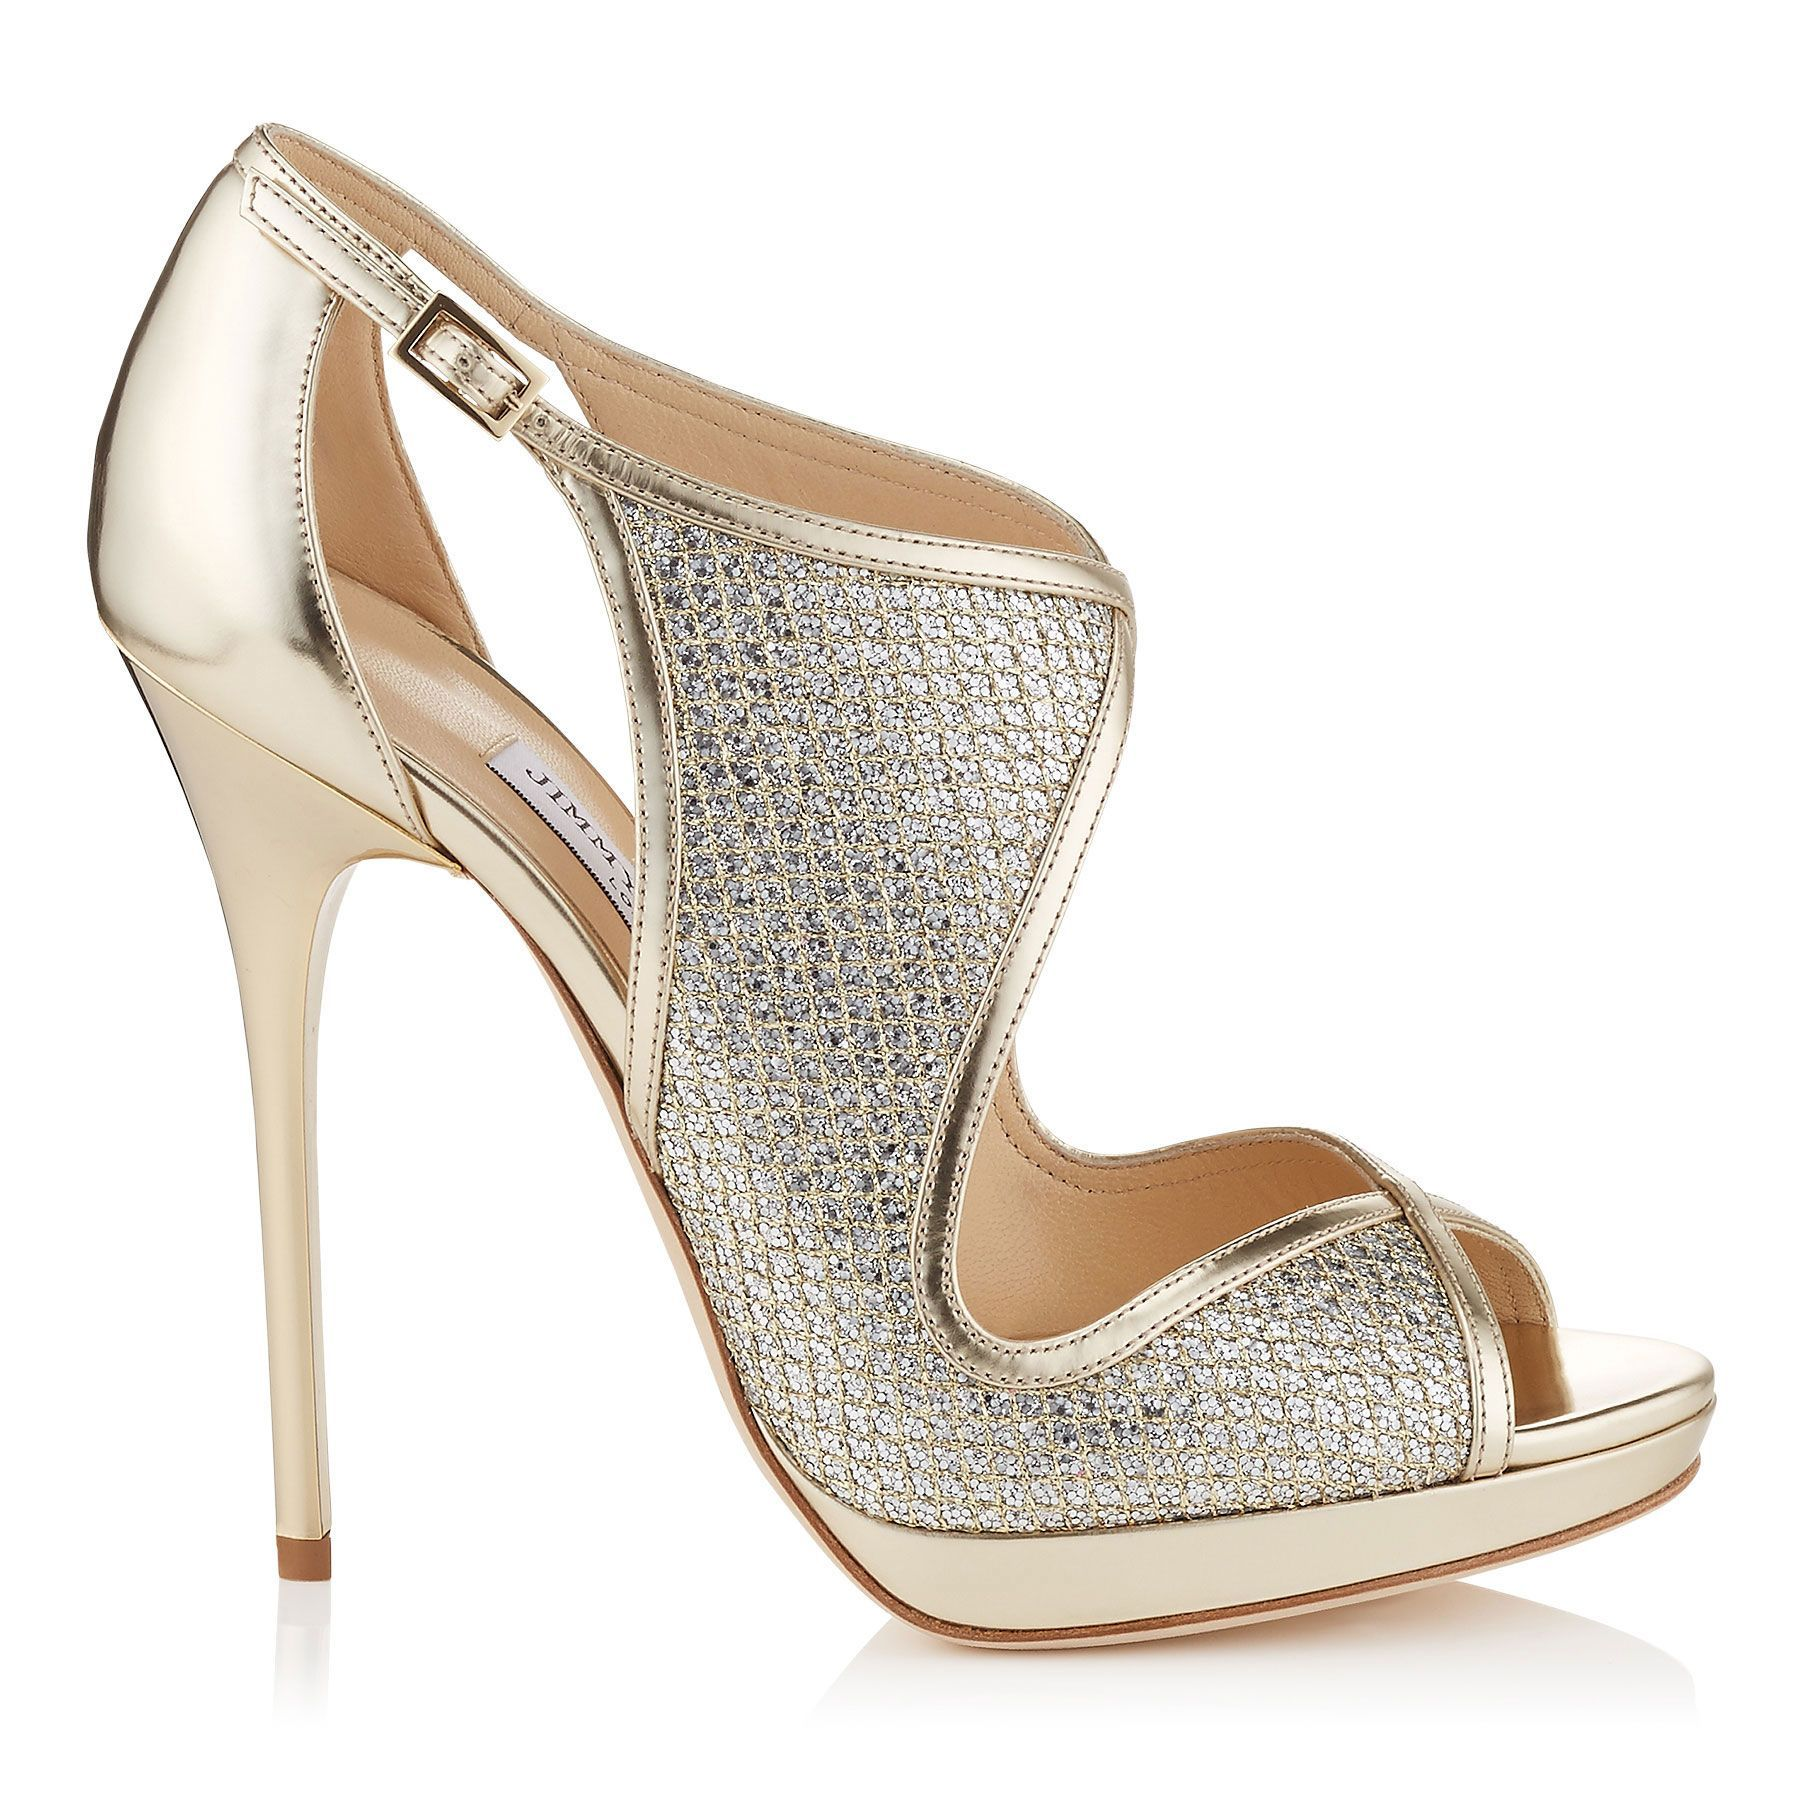 0e2a4bca0805 Jimmy Choo - Official Website  Browse the complete collection of women s  shoes